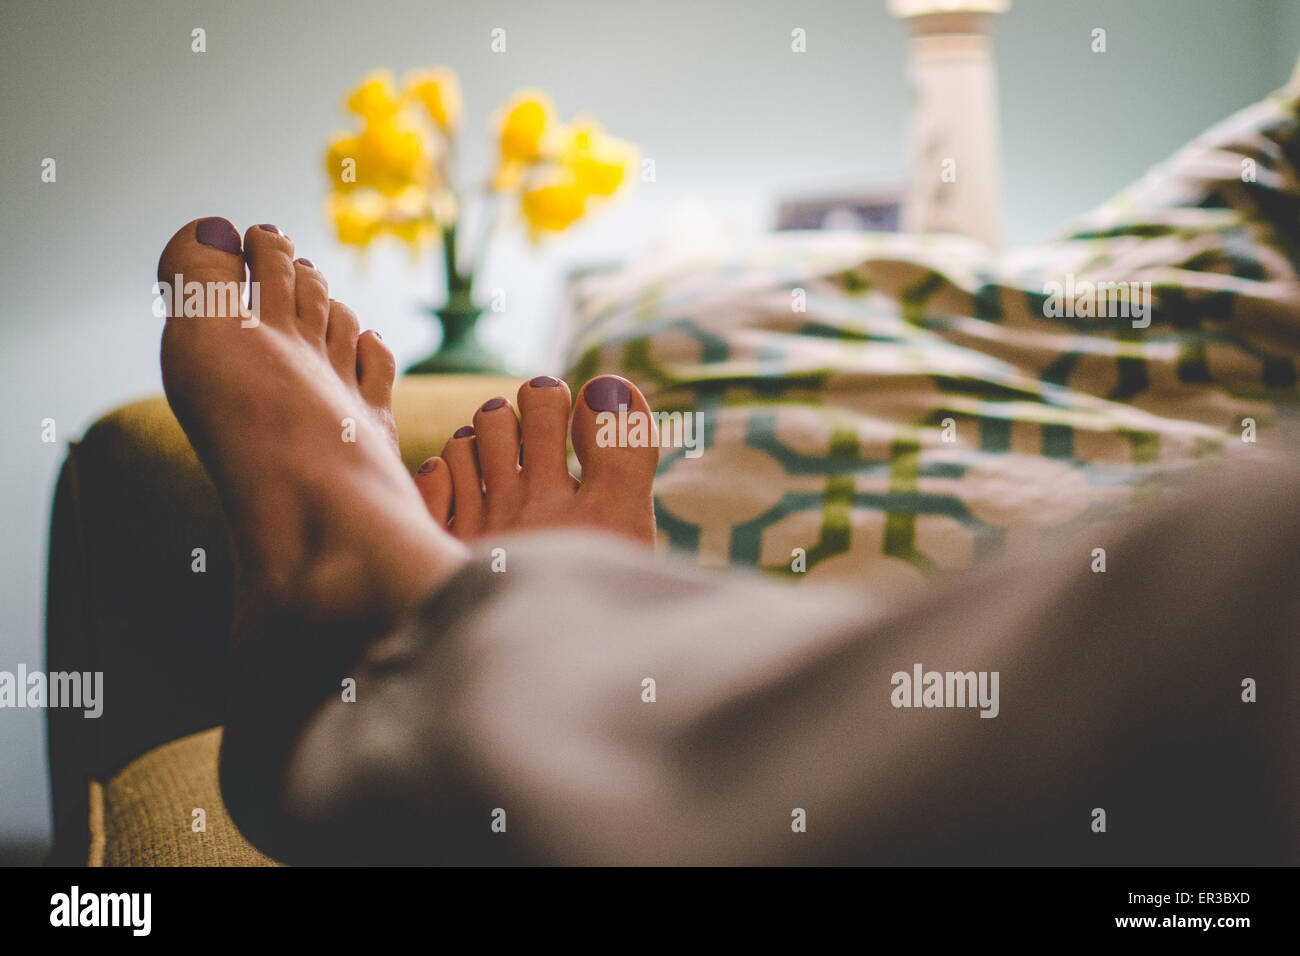 Woman's feet as she relaxes on the couch in the evening - Stock Image